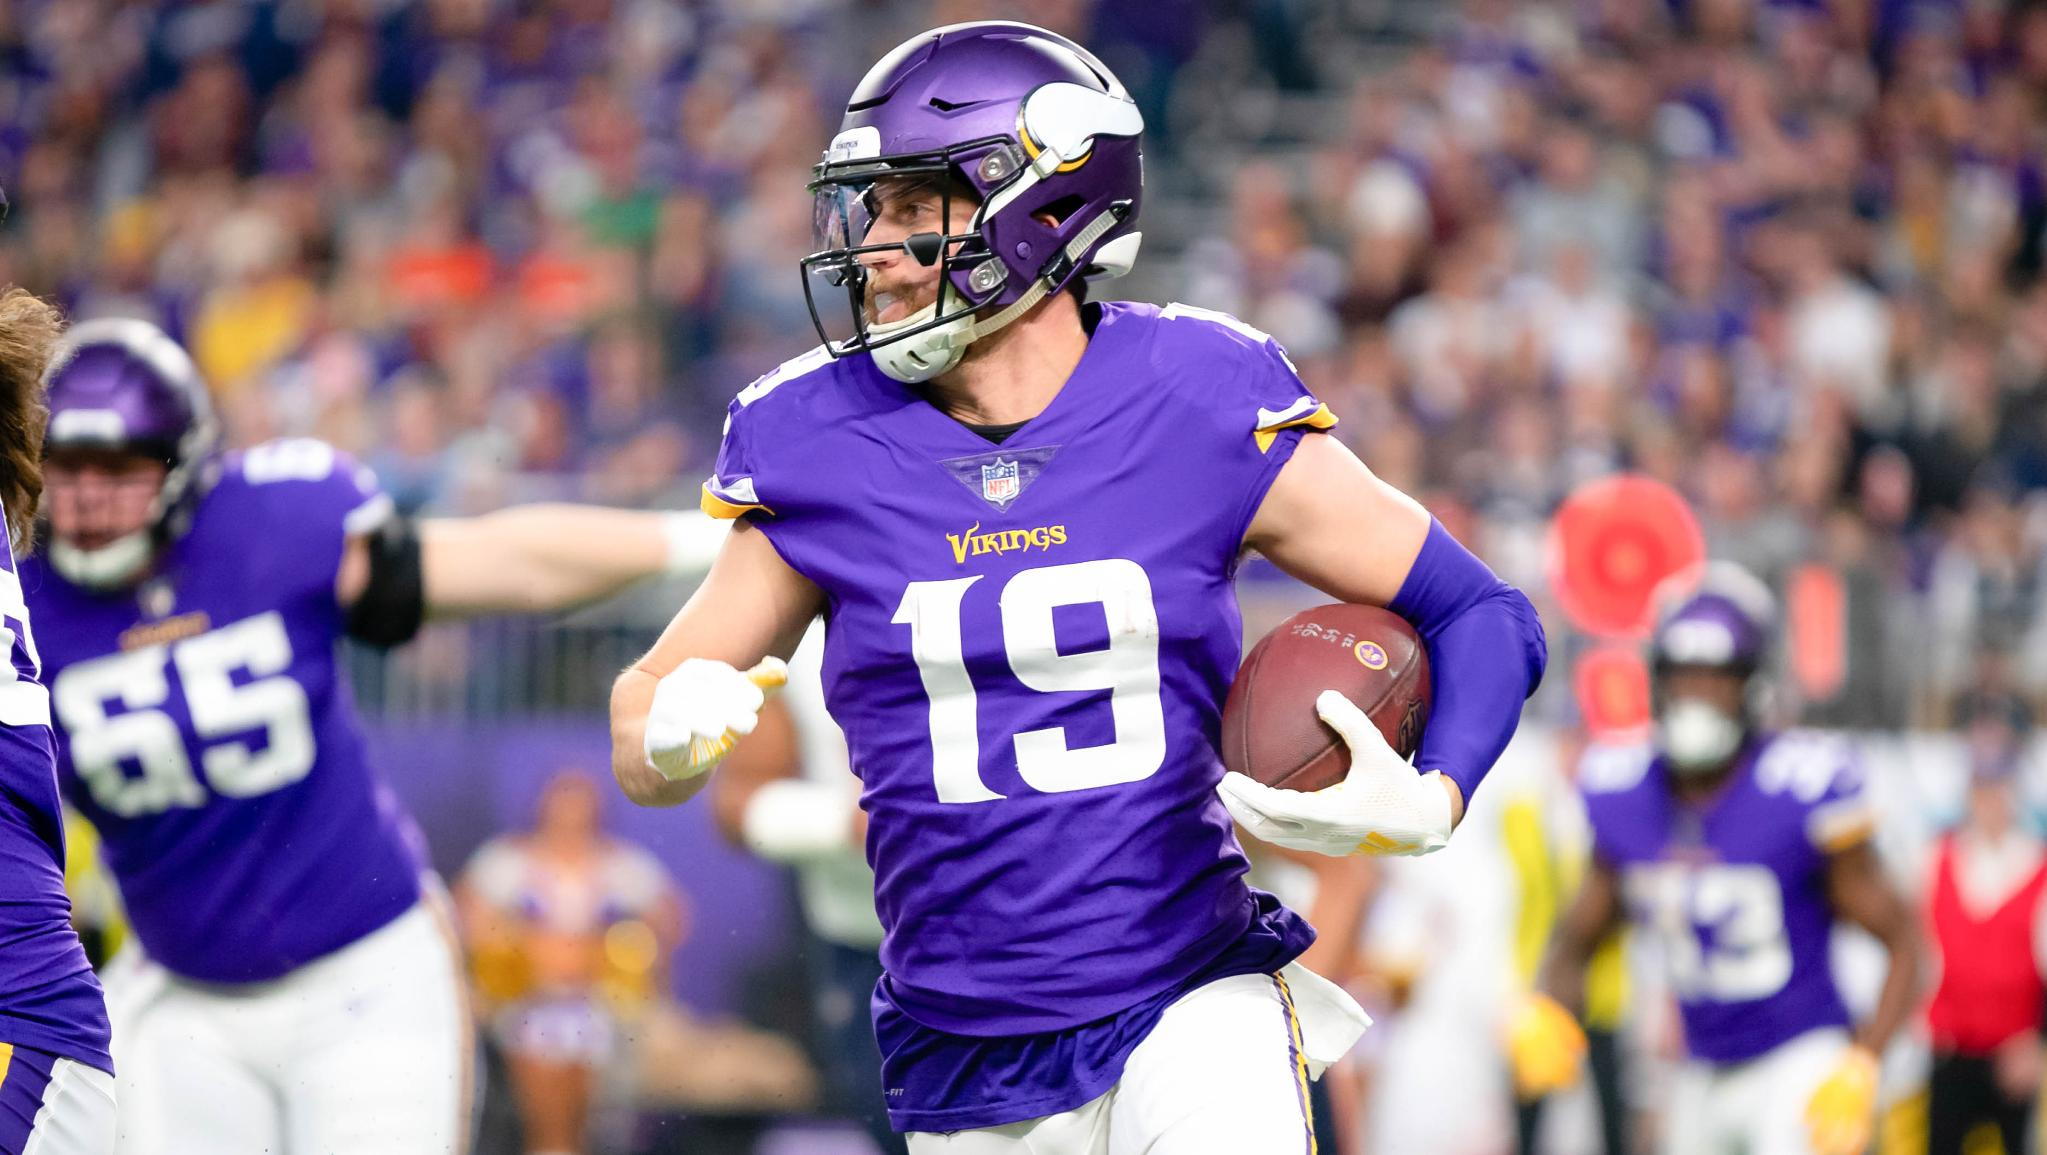 .@athielen19 was voted the NFC North's Offensive MVP by ESPN writers.  ��: https://t.co/Xc8dbTUBHU https://t.co/MdDy5apC6w